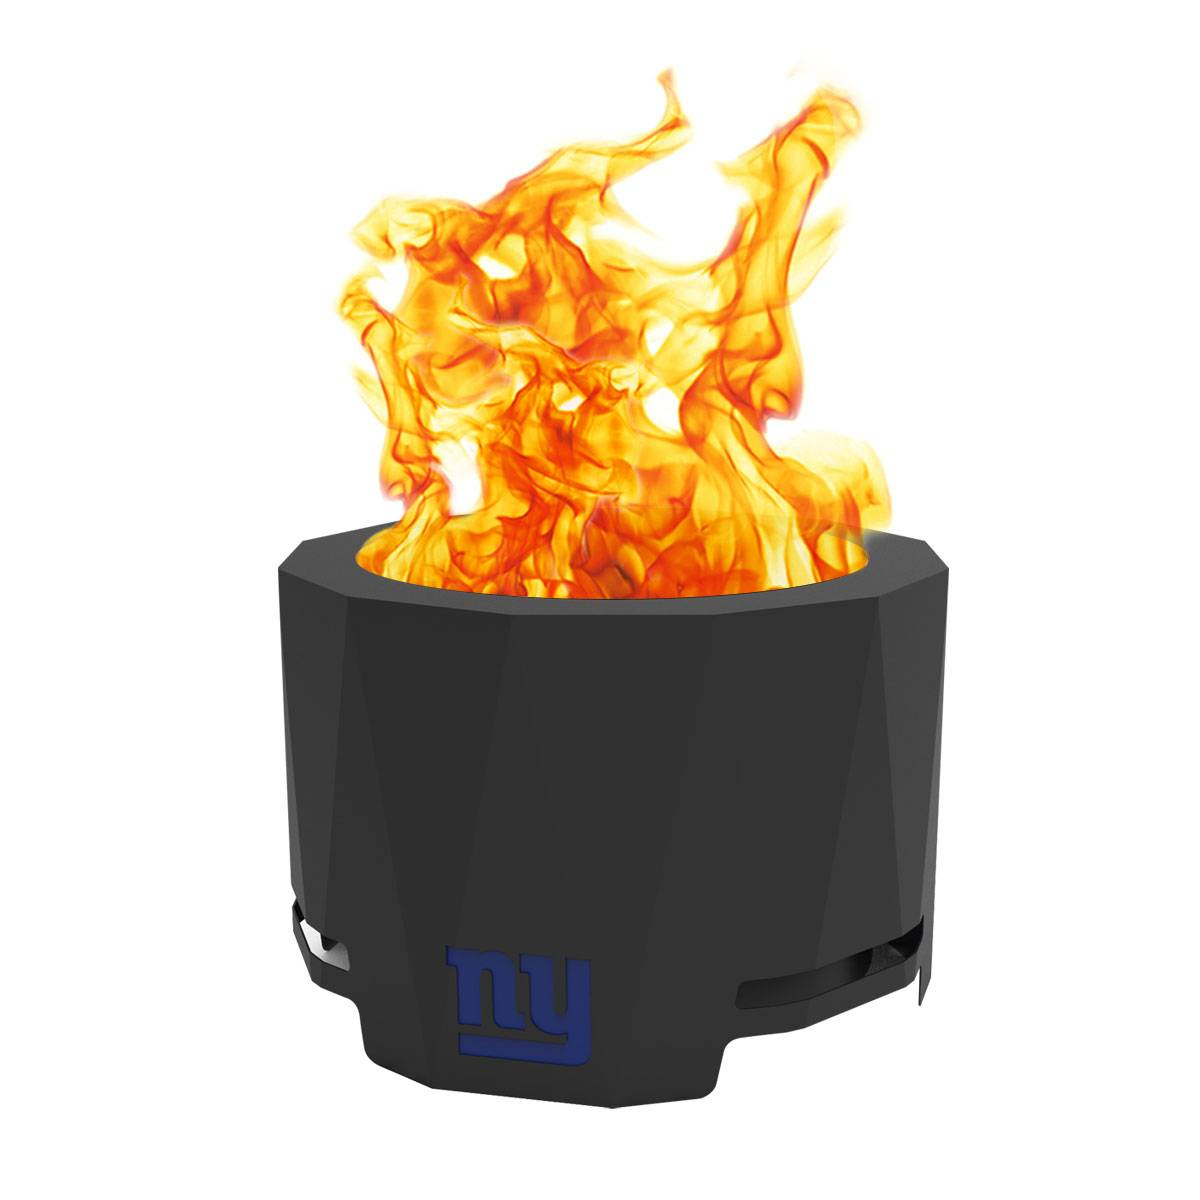 New York Giants The Peak Patio Fire Pit on The Peak Patio Fire Pit id=52635